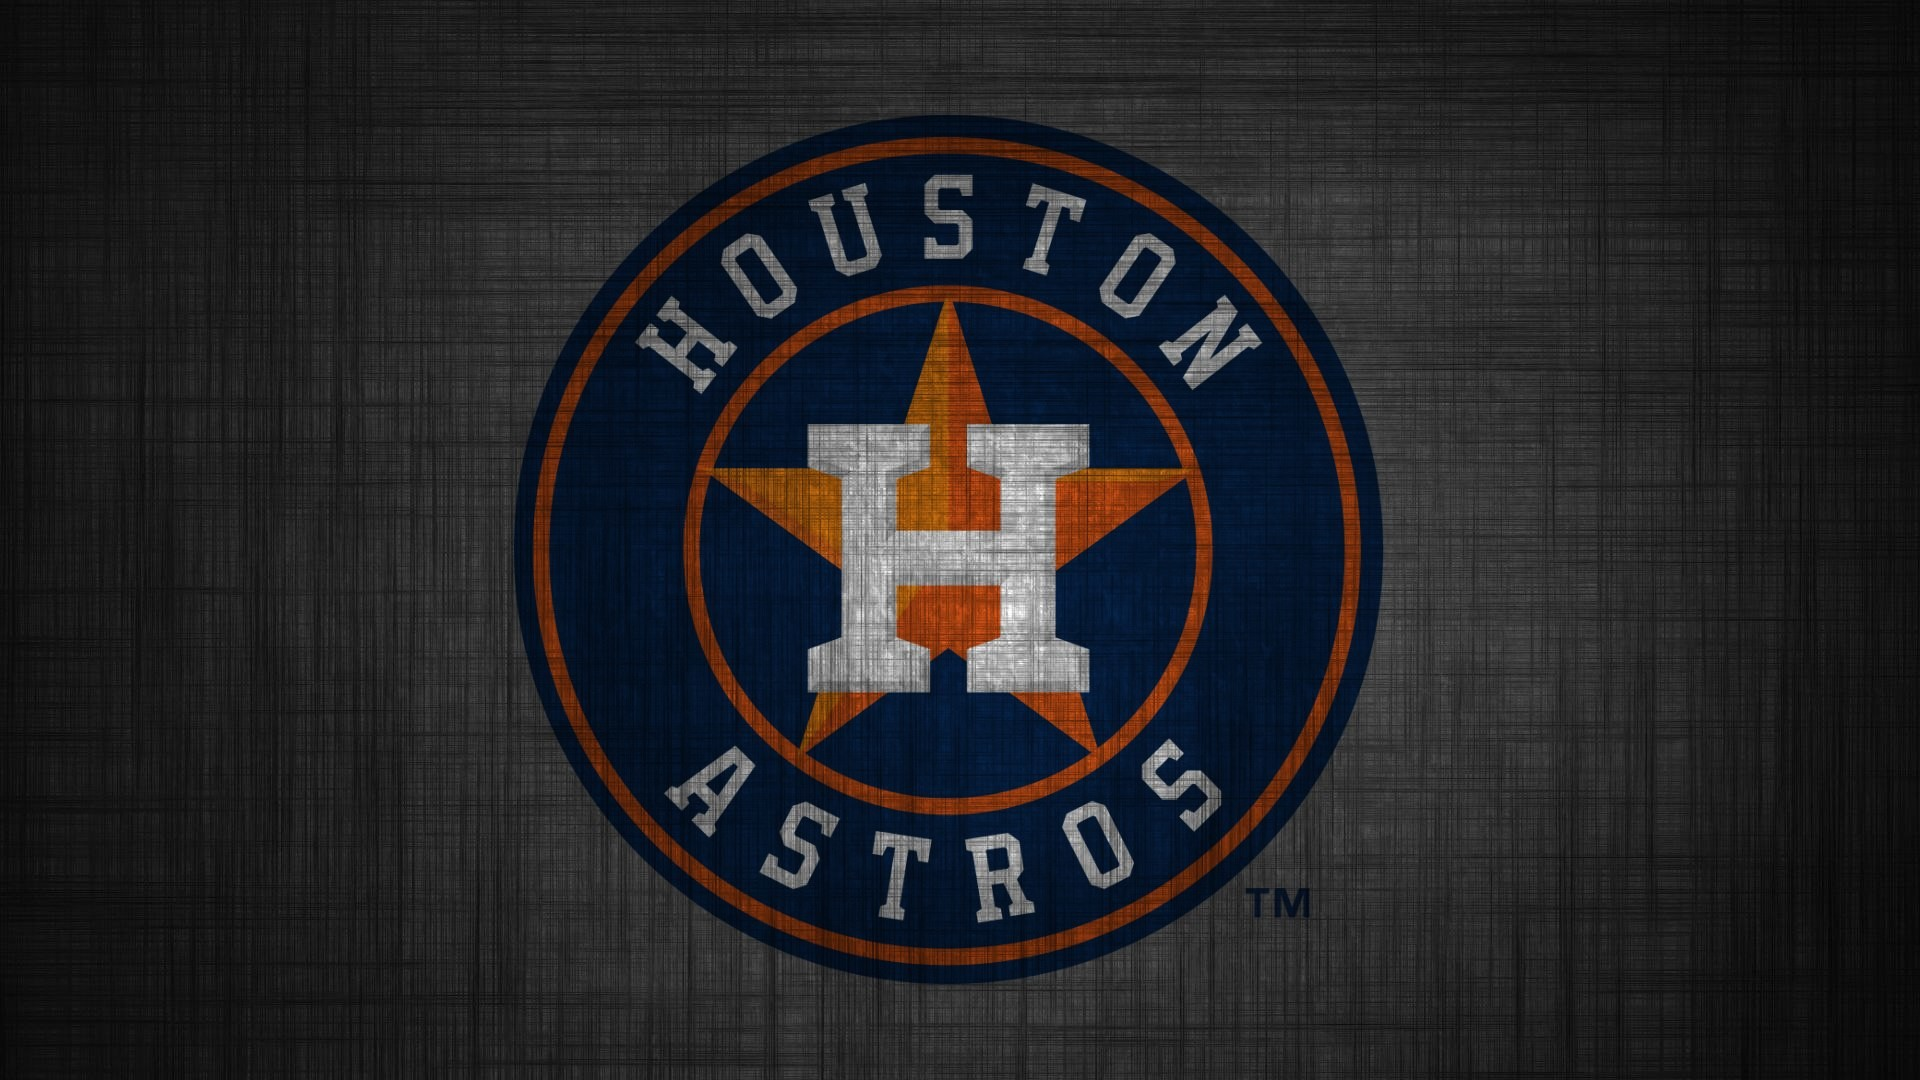 Photo Credit:  https://fullhdpictures.com/wp-content/uploads/2015/10/Houston-Astros- Wallpapers.jpg